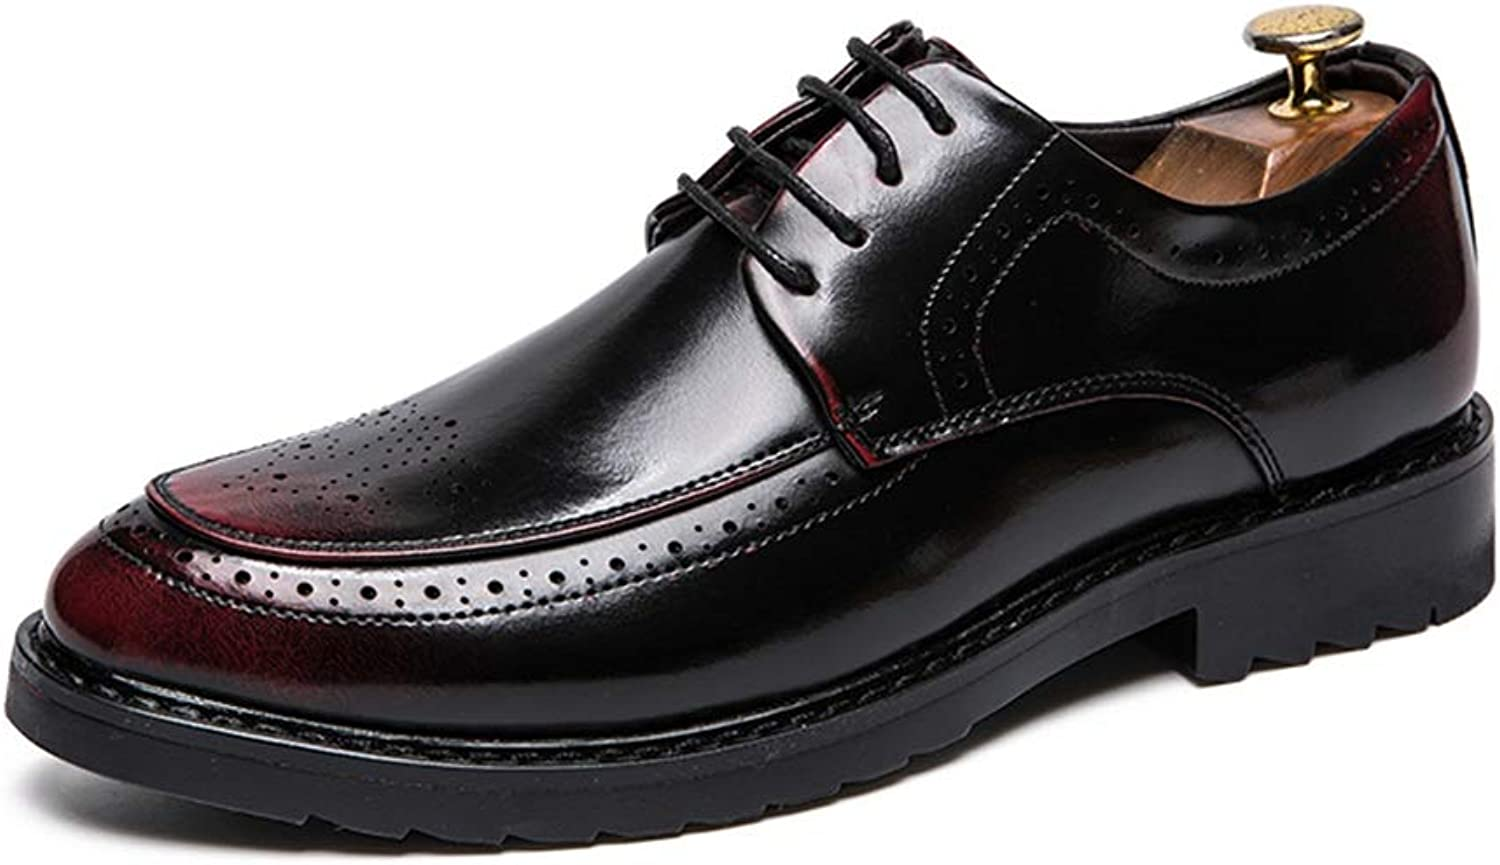 CHENXD shoes, Men's Fashion Style Carving Low-top Business Oxford Casual Patent Leather Leisure shoes